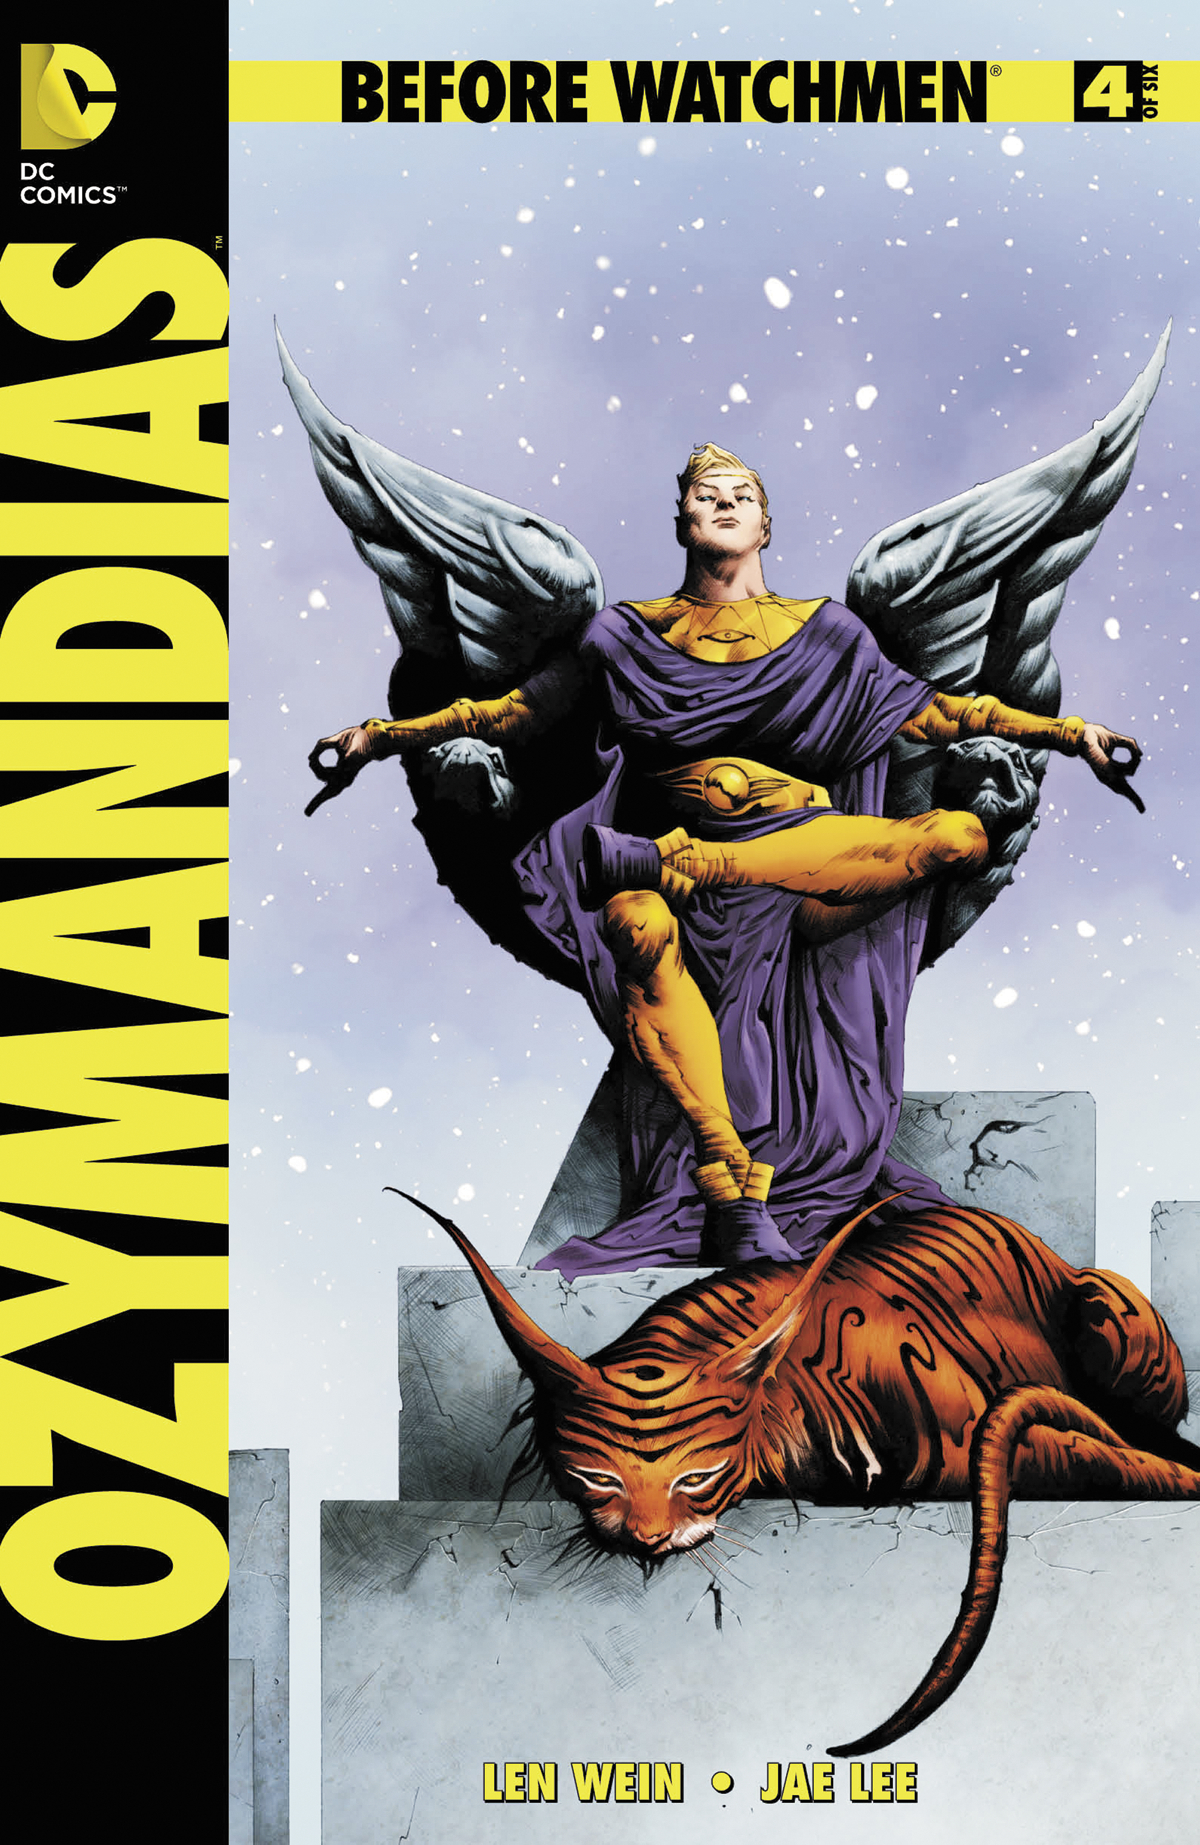 BEFORE WATCHMEN OZYMANDIAS #4 (OF 6)